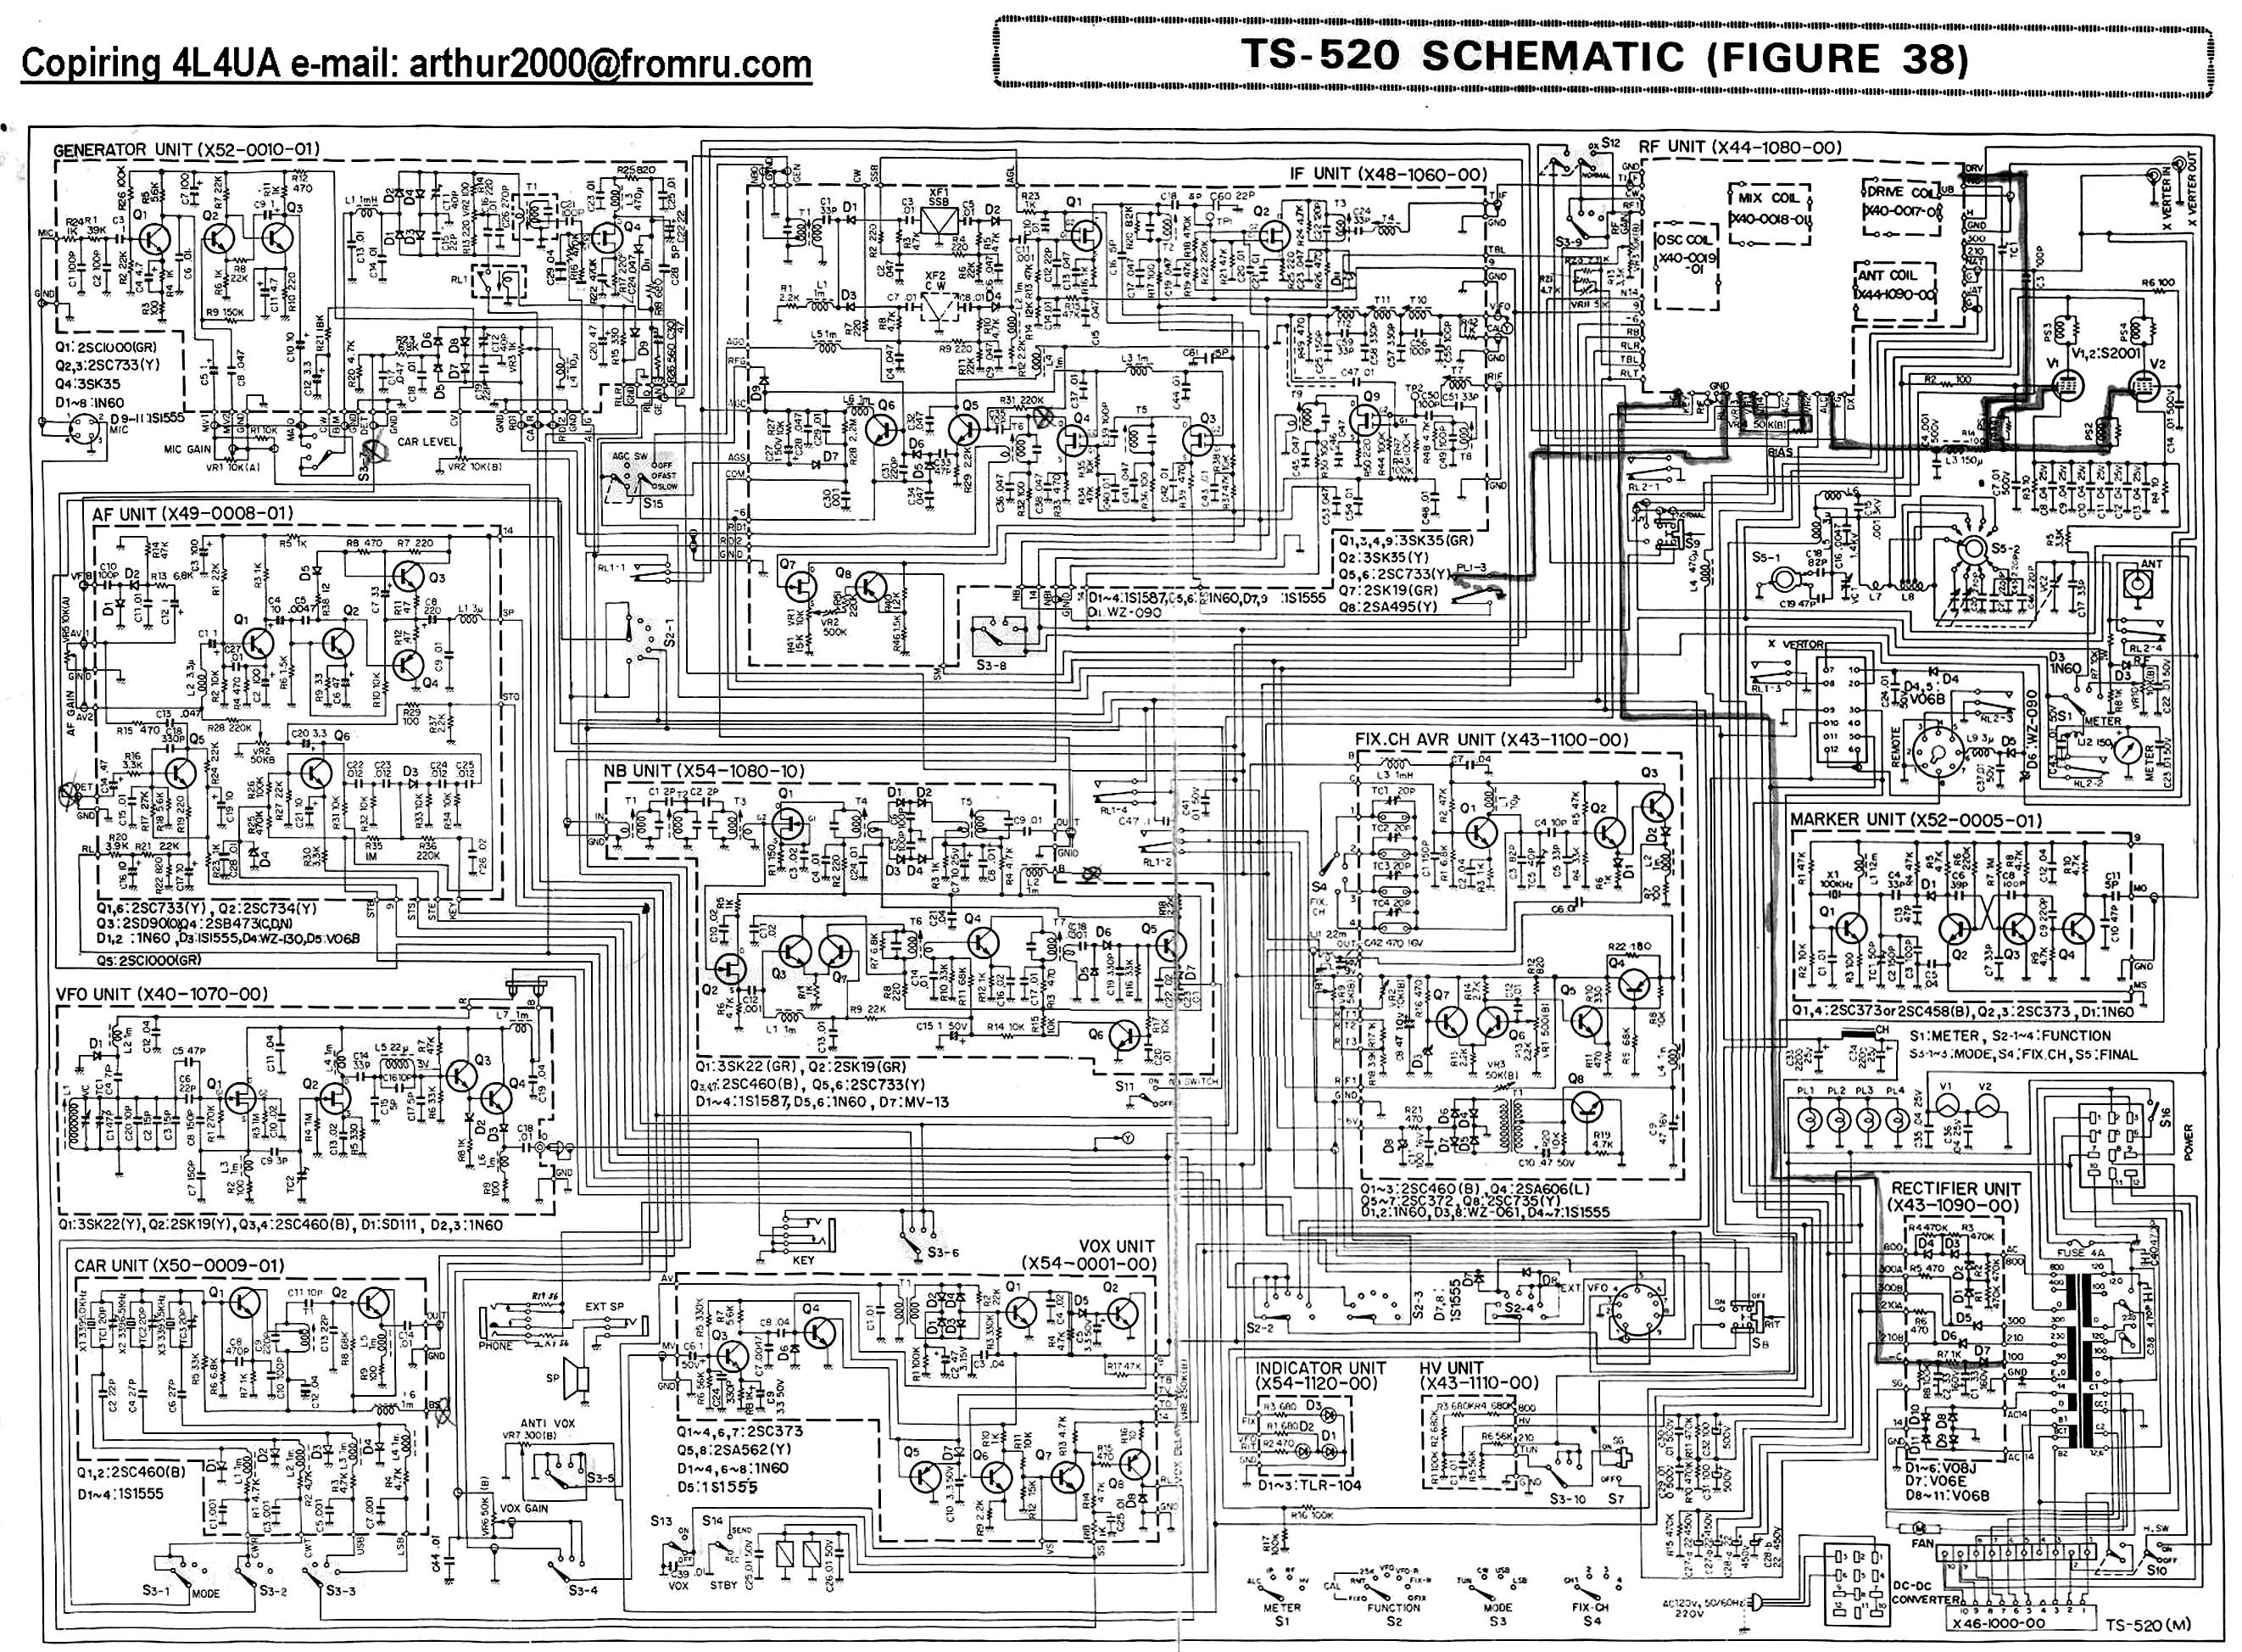 stereo wiring diagram kenwood stereo wiring diagrams stereo wiring diagram kenwood kenwood ts 520 schema